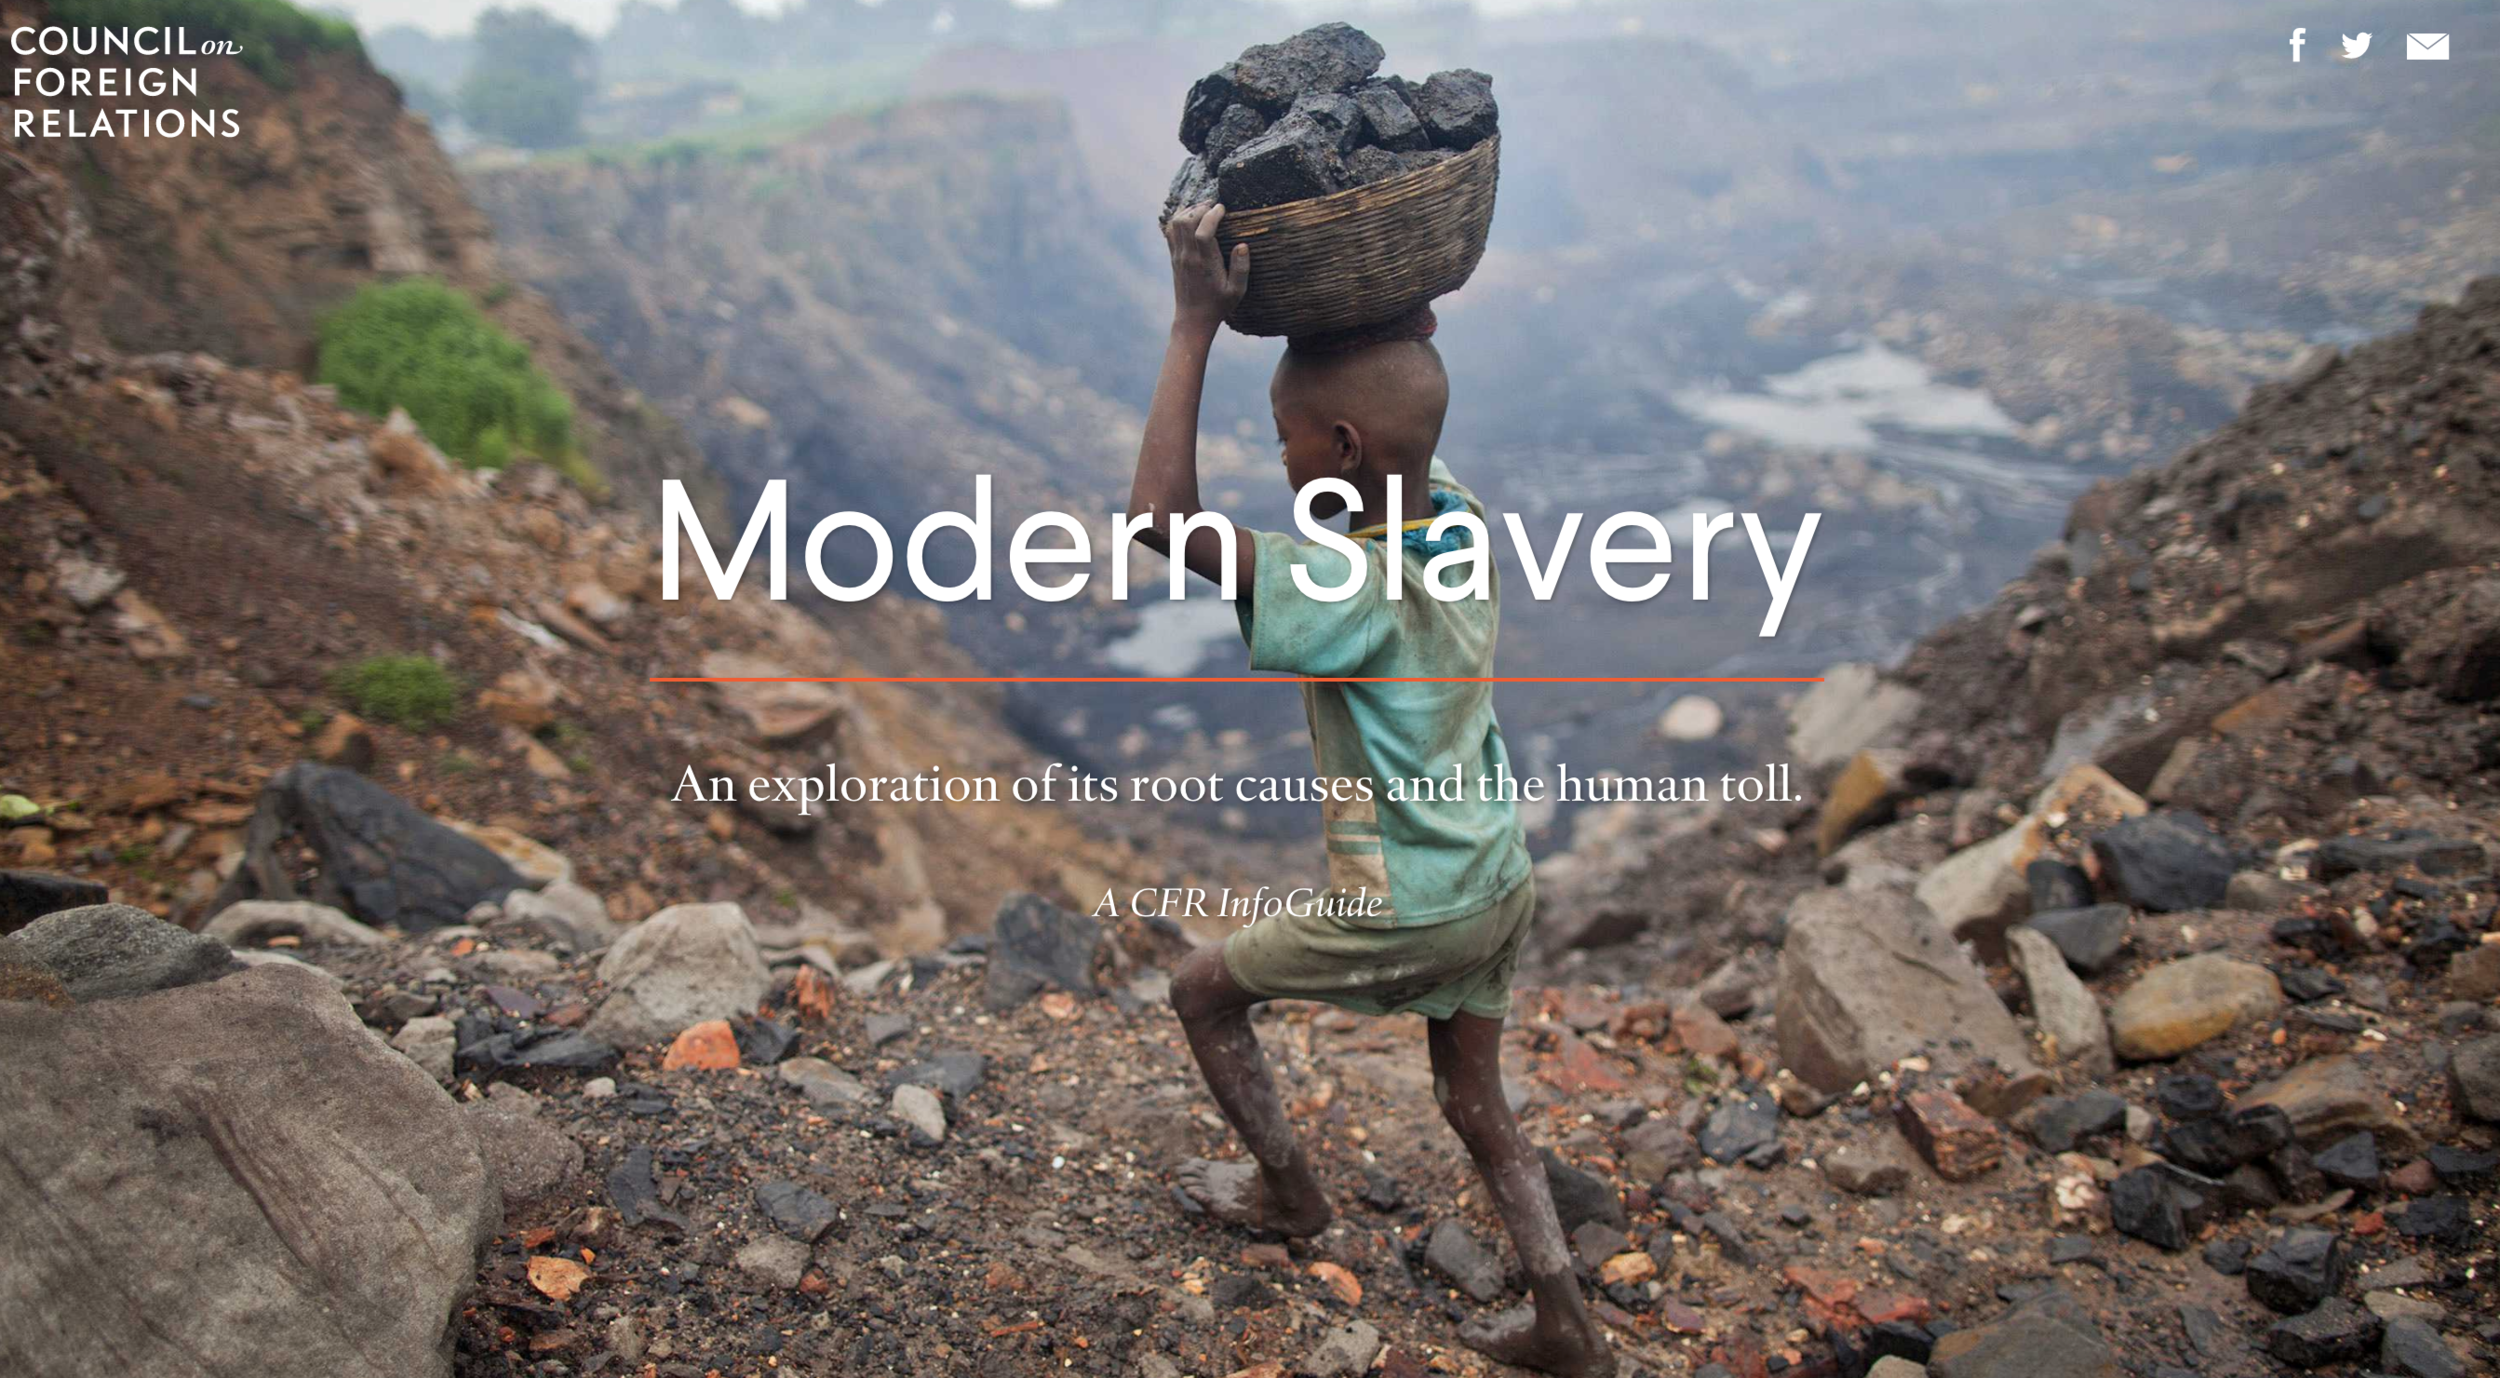 Council on foreign relations:Modern slavery -